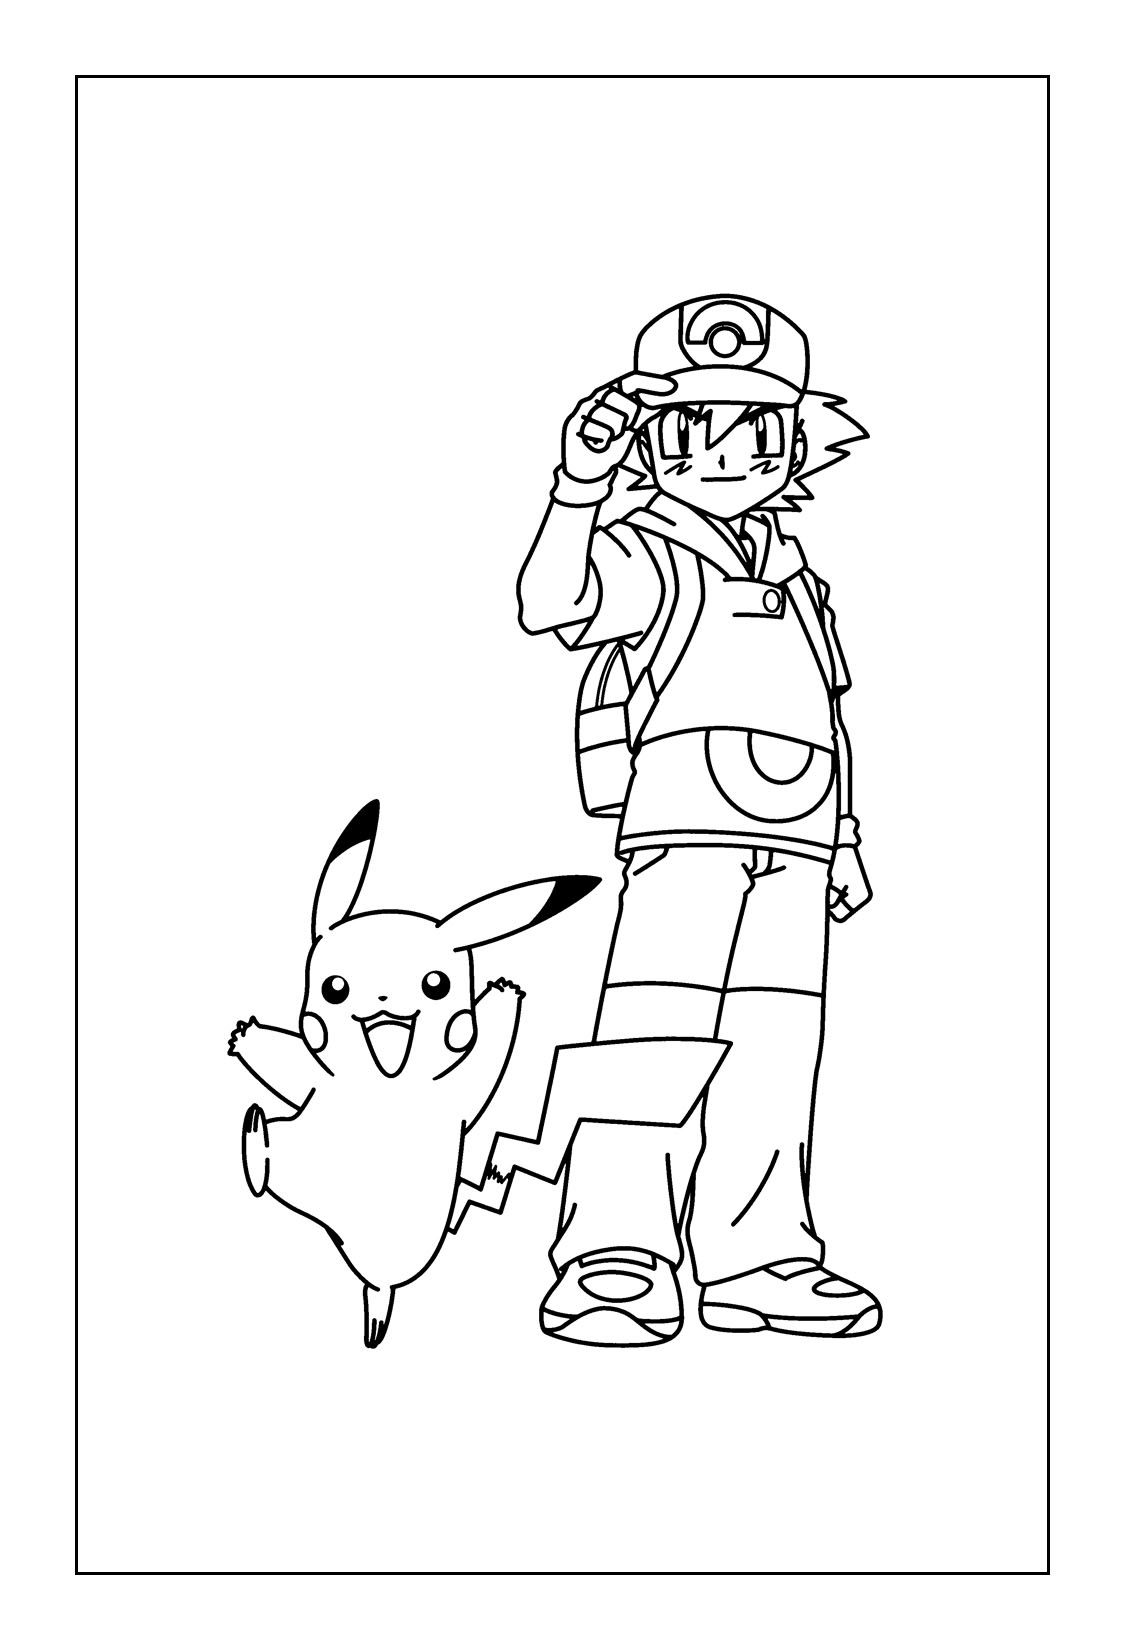 Ash And Pikachu Coloring Pages Pikachu Coloring Page Pokemon Coloring Pages Pokemon Coloring Sheets